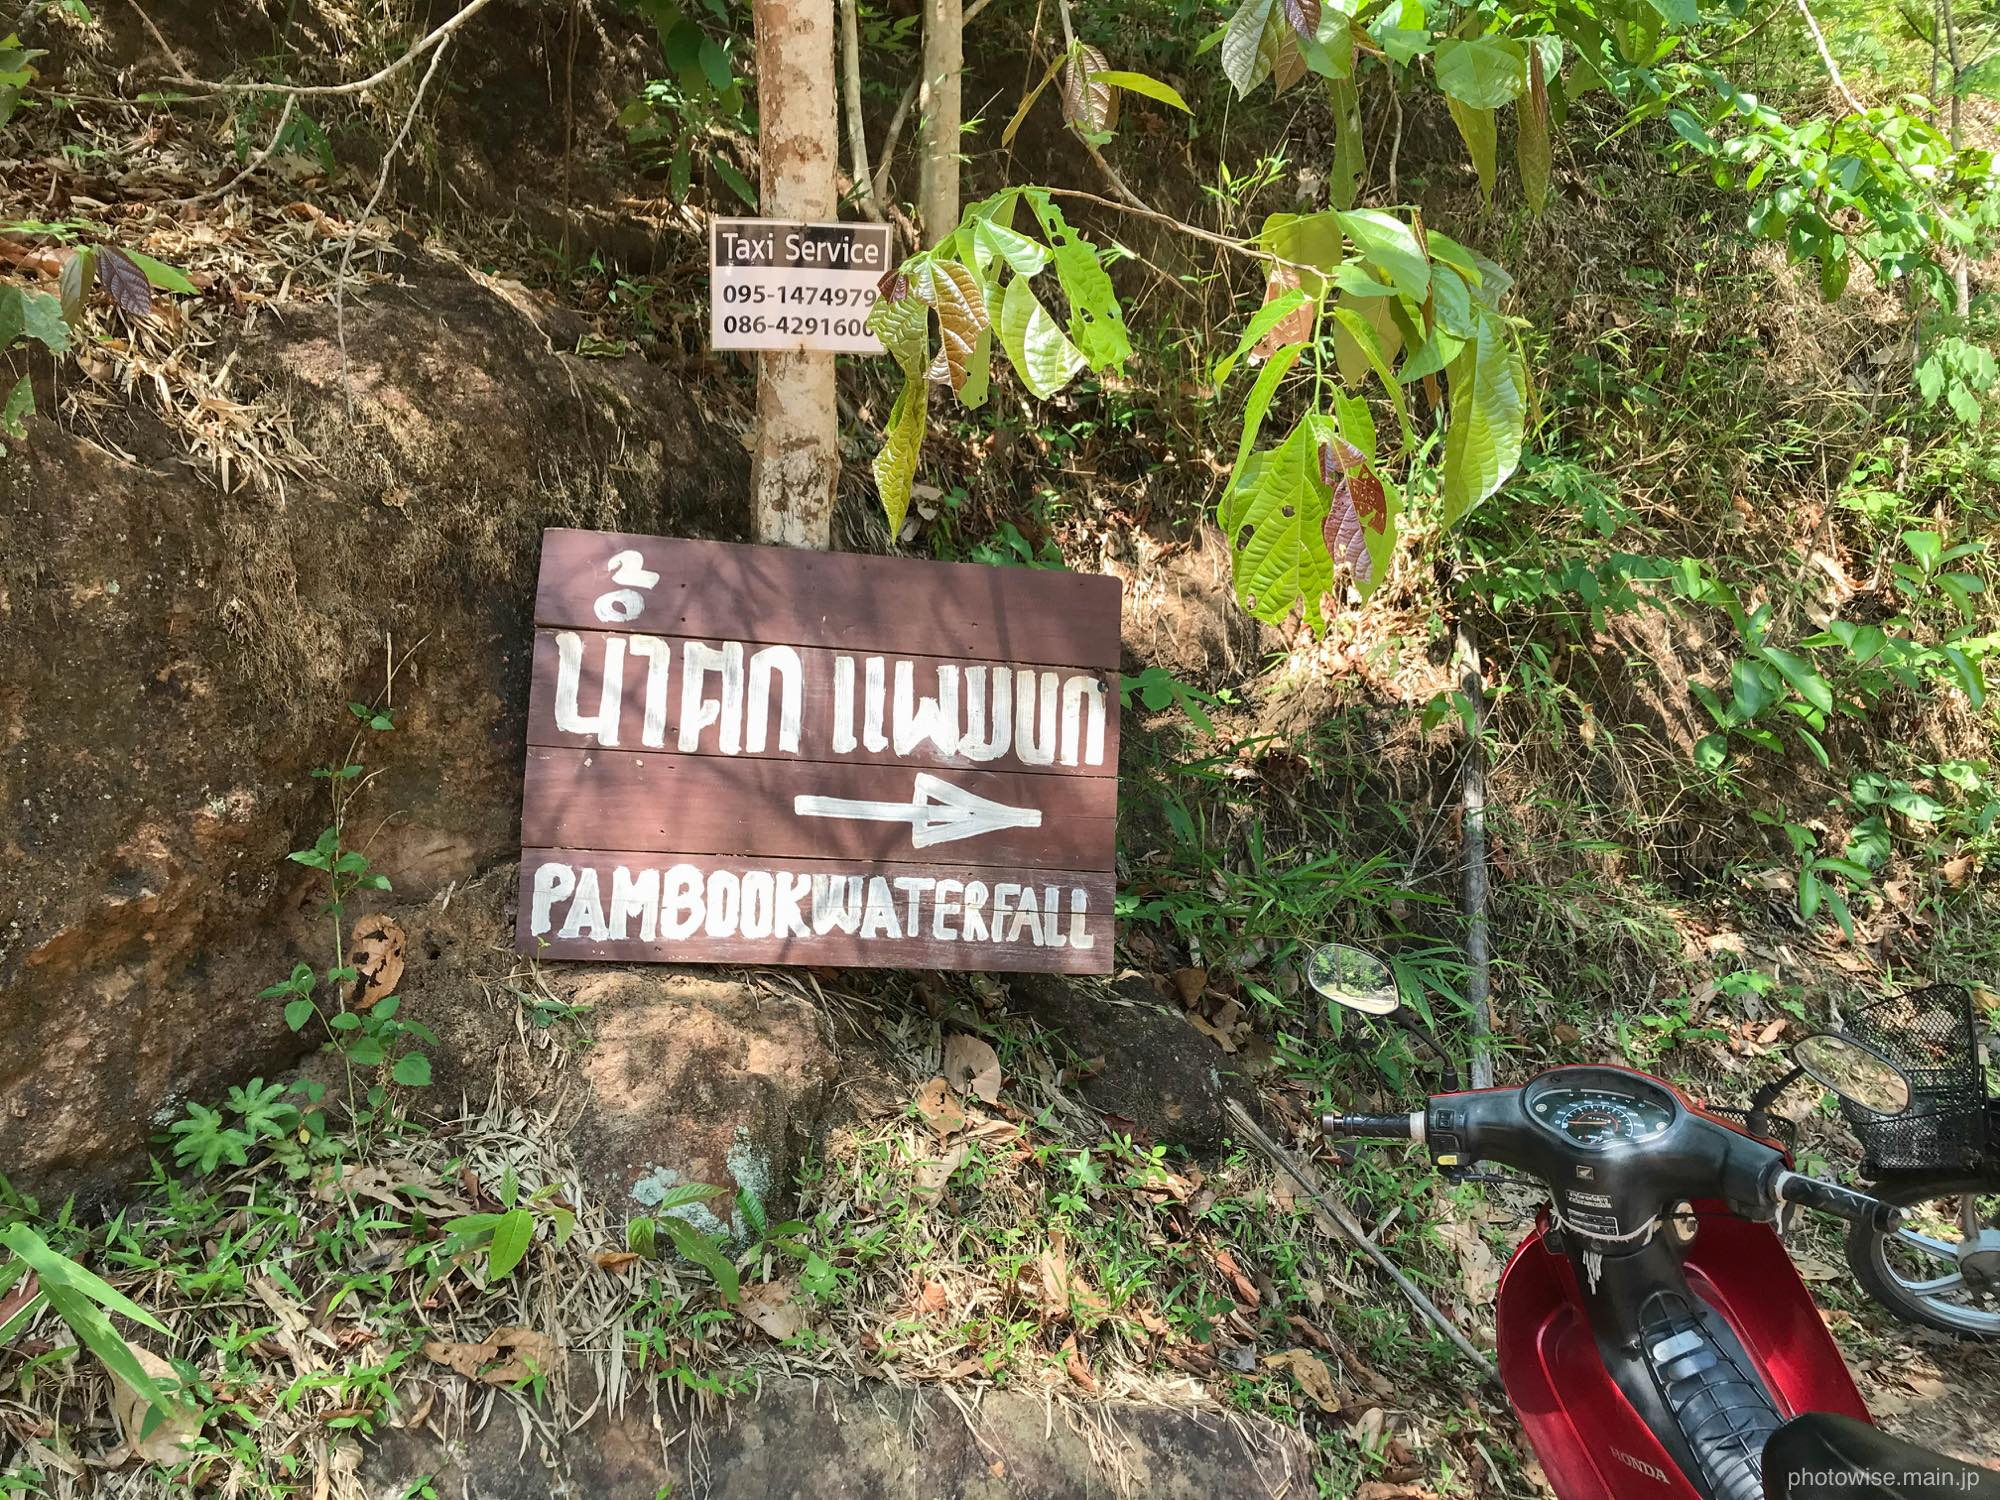 PAMBOOK WATERFALL駐輪場